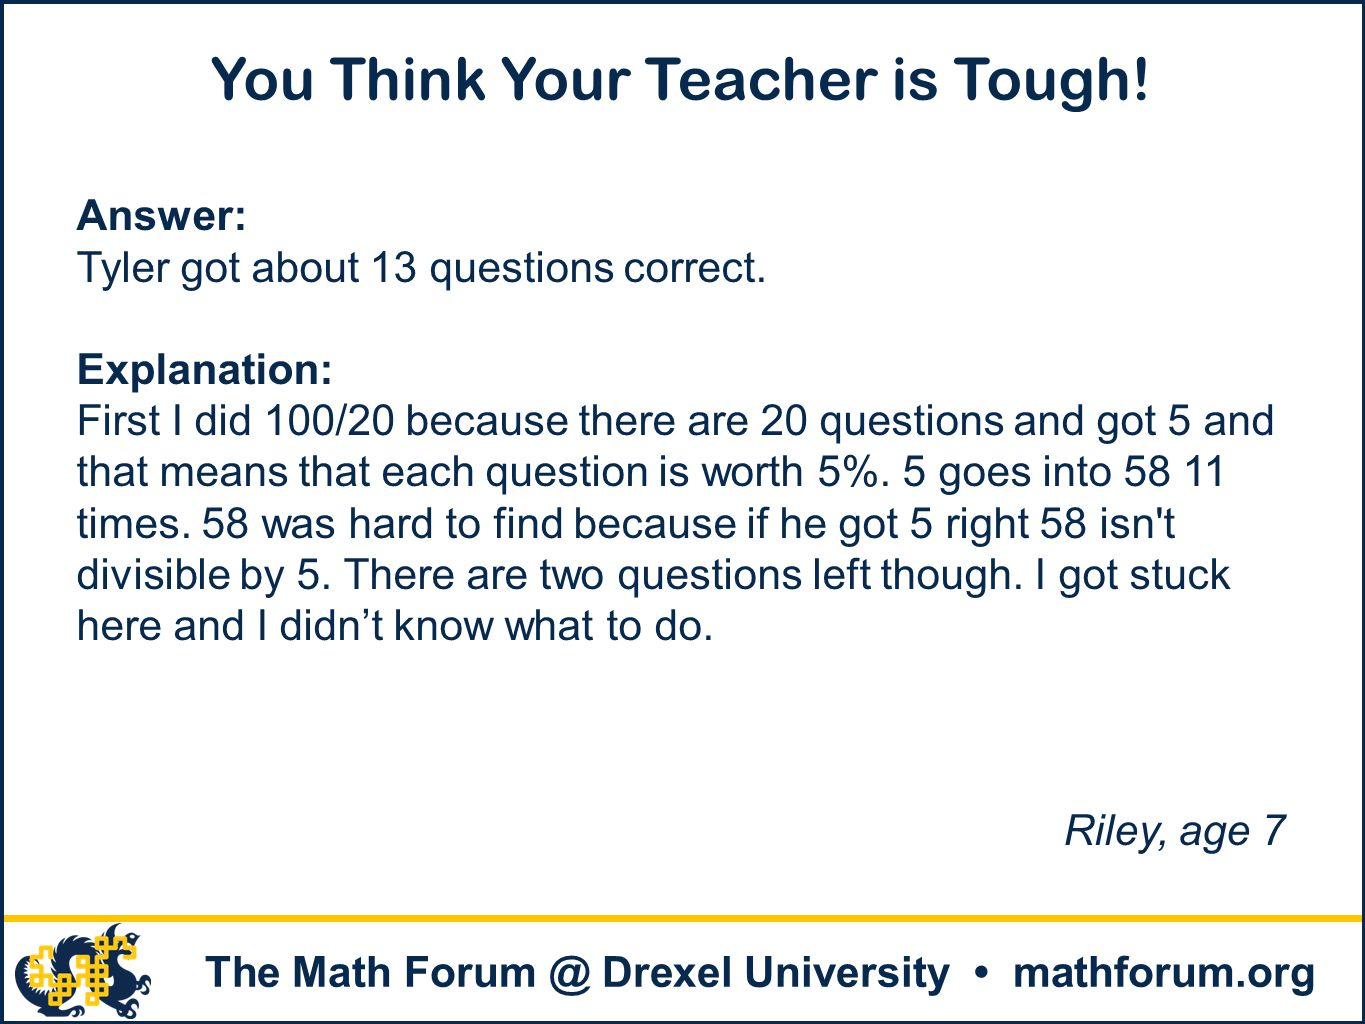 You Think Your Teacher is Tough!